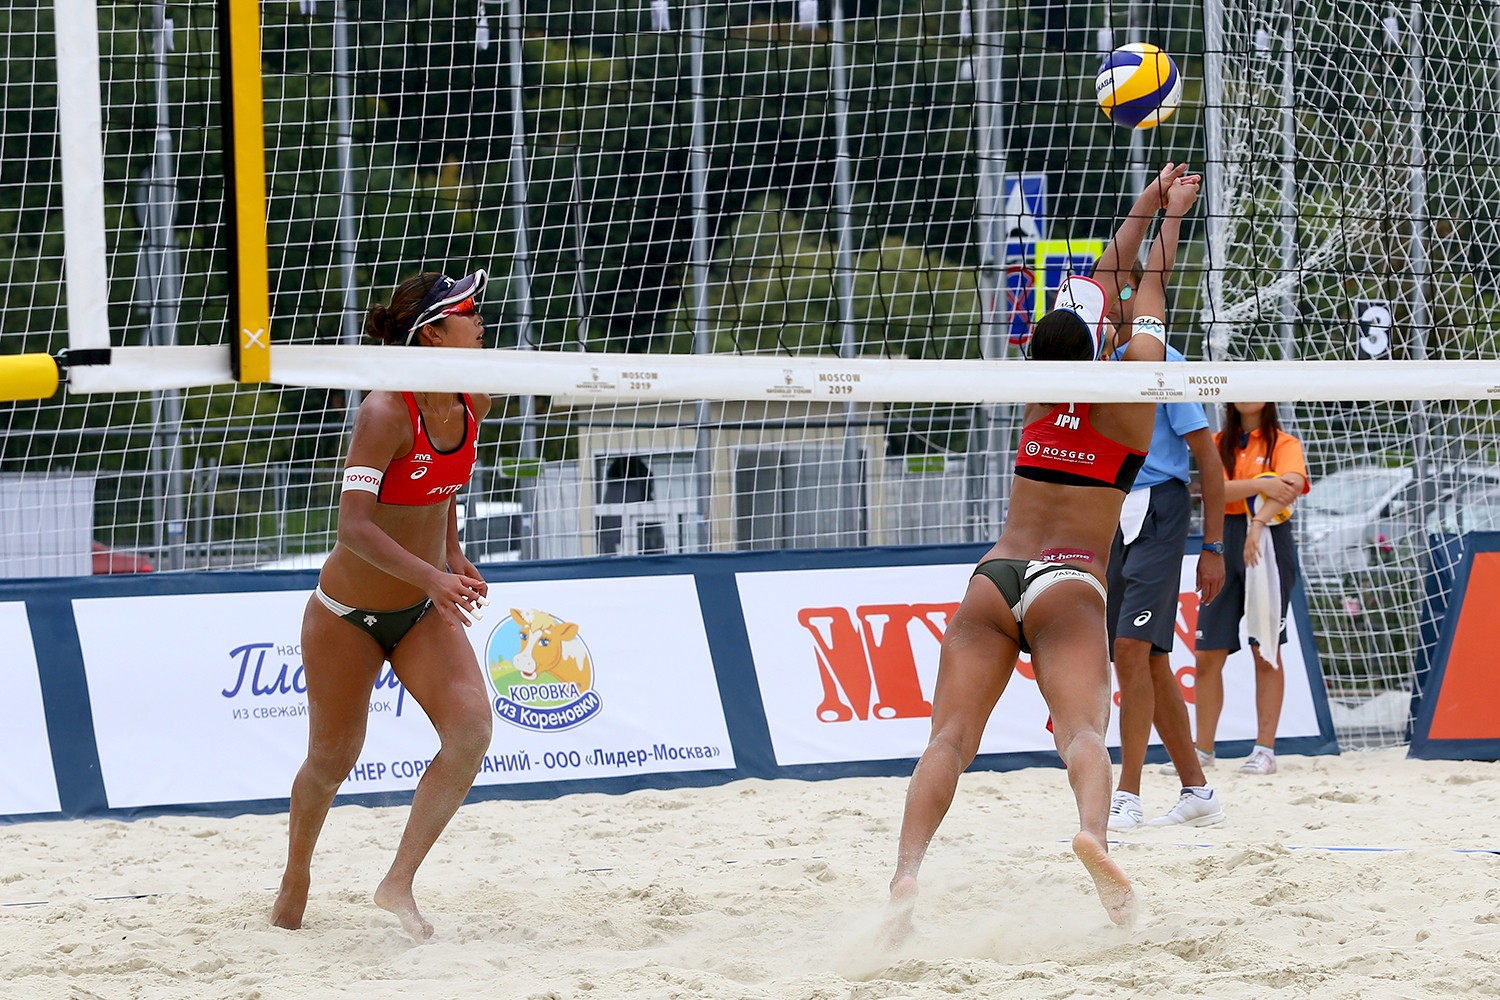 Japan's Sayaka Mizoe and Suzuka Hashimoto reached the main draw of the women's event in Moscow ©FIVB